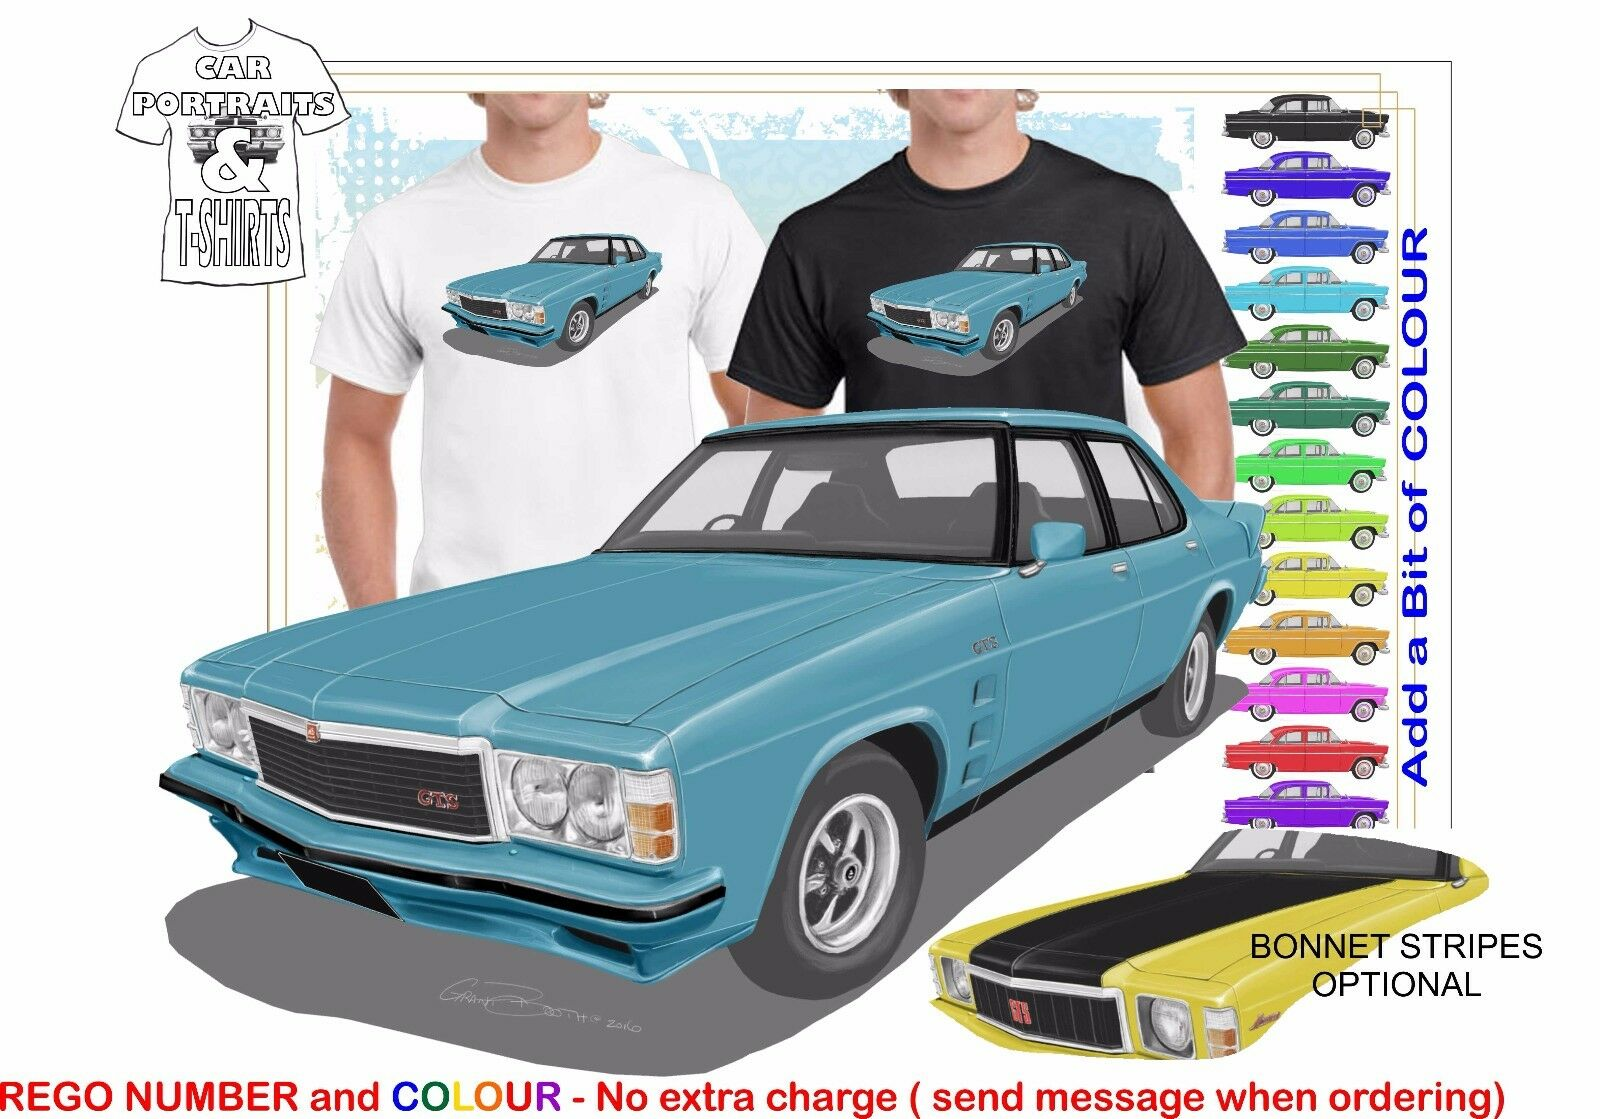 CLASSIC 77-80 HZ HOLDEN MONARO 4 DR ILLUSTRATED T-SHIRT MUSCLE RETRO SPORTS